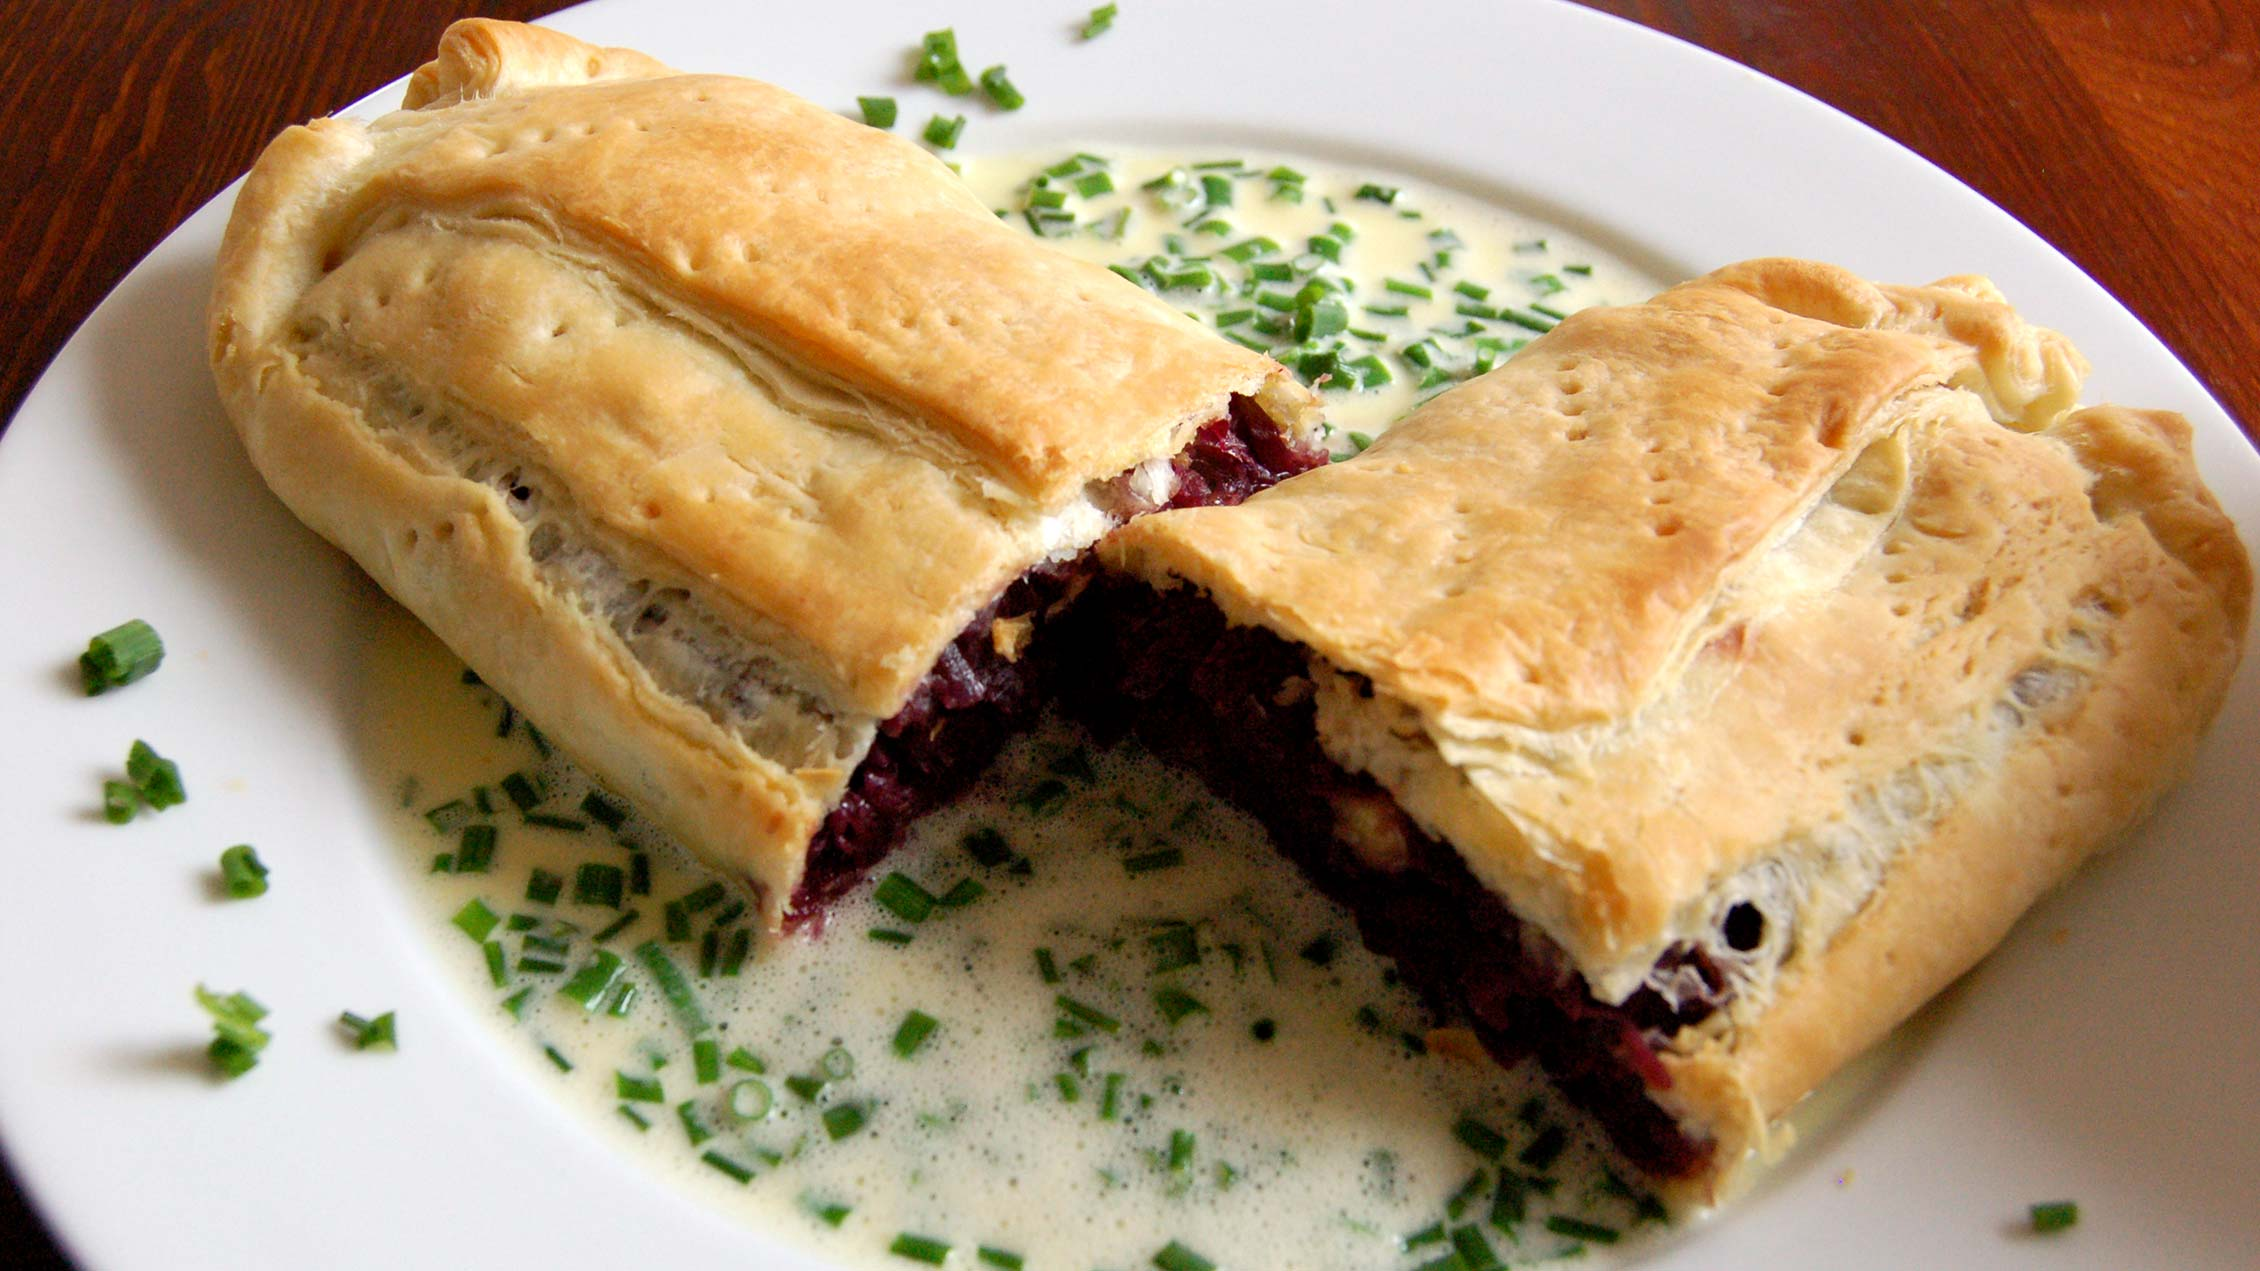 Holiday in Carinthia - Specialities: Strudel with red cabbage